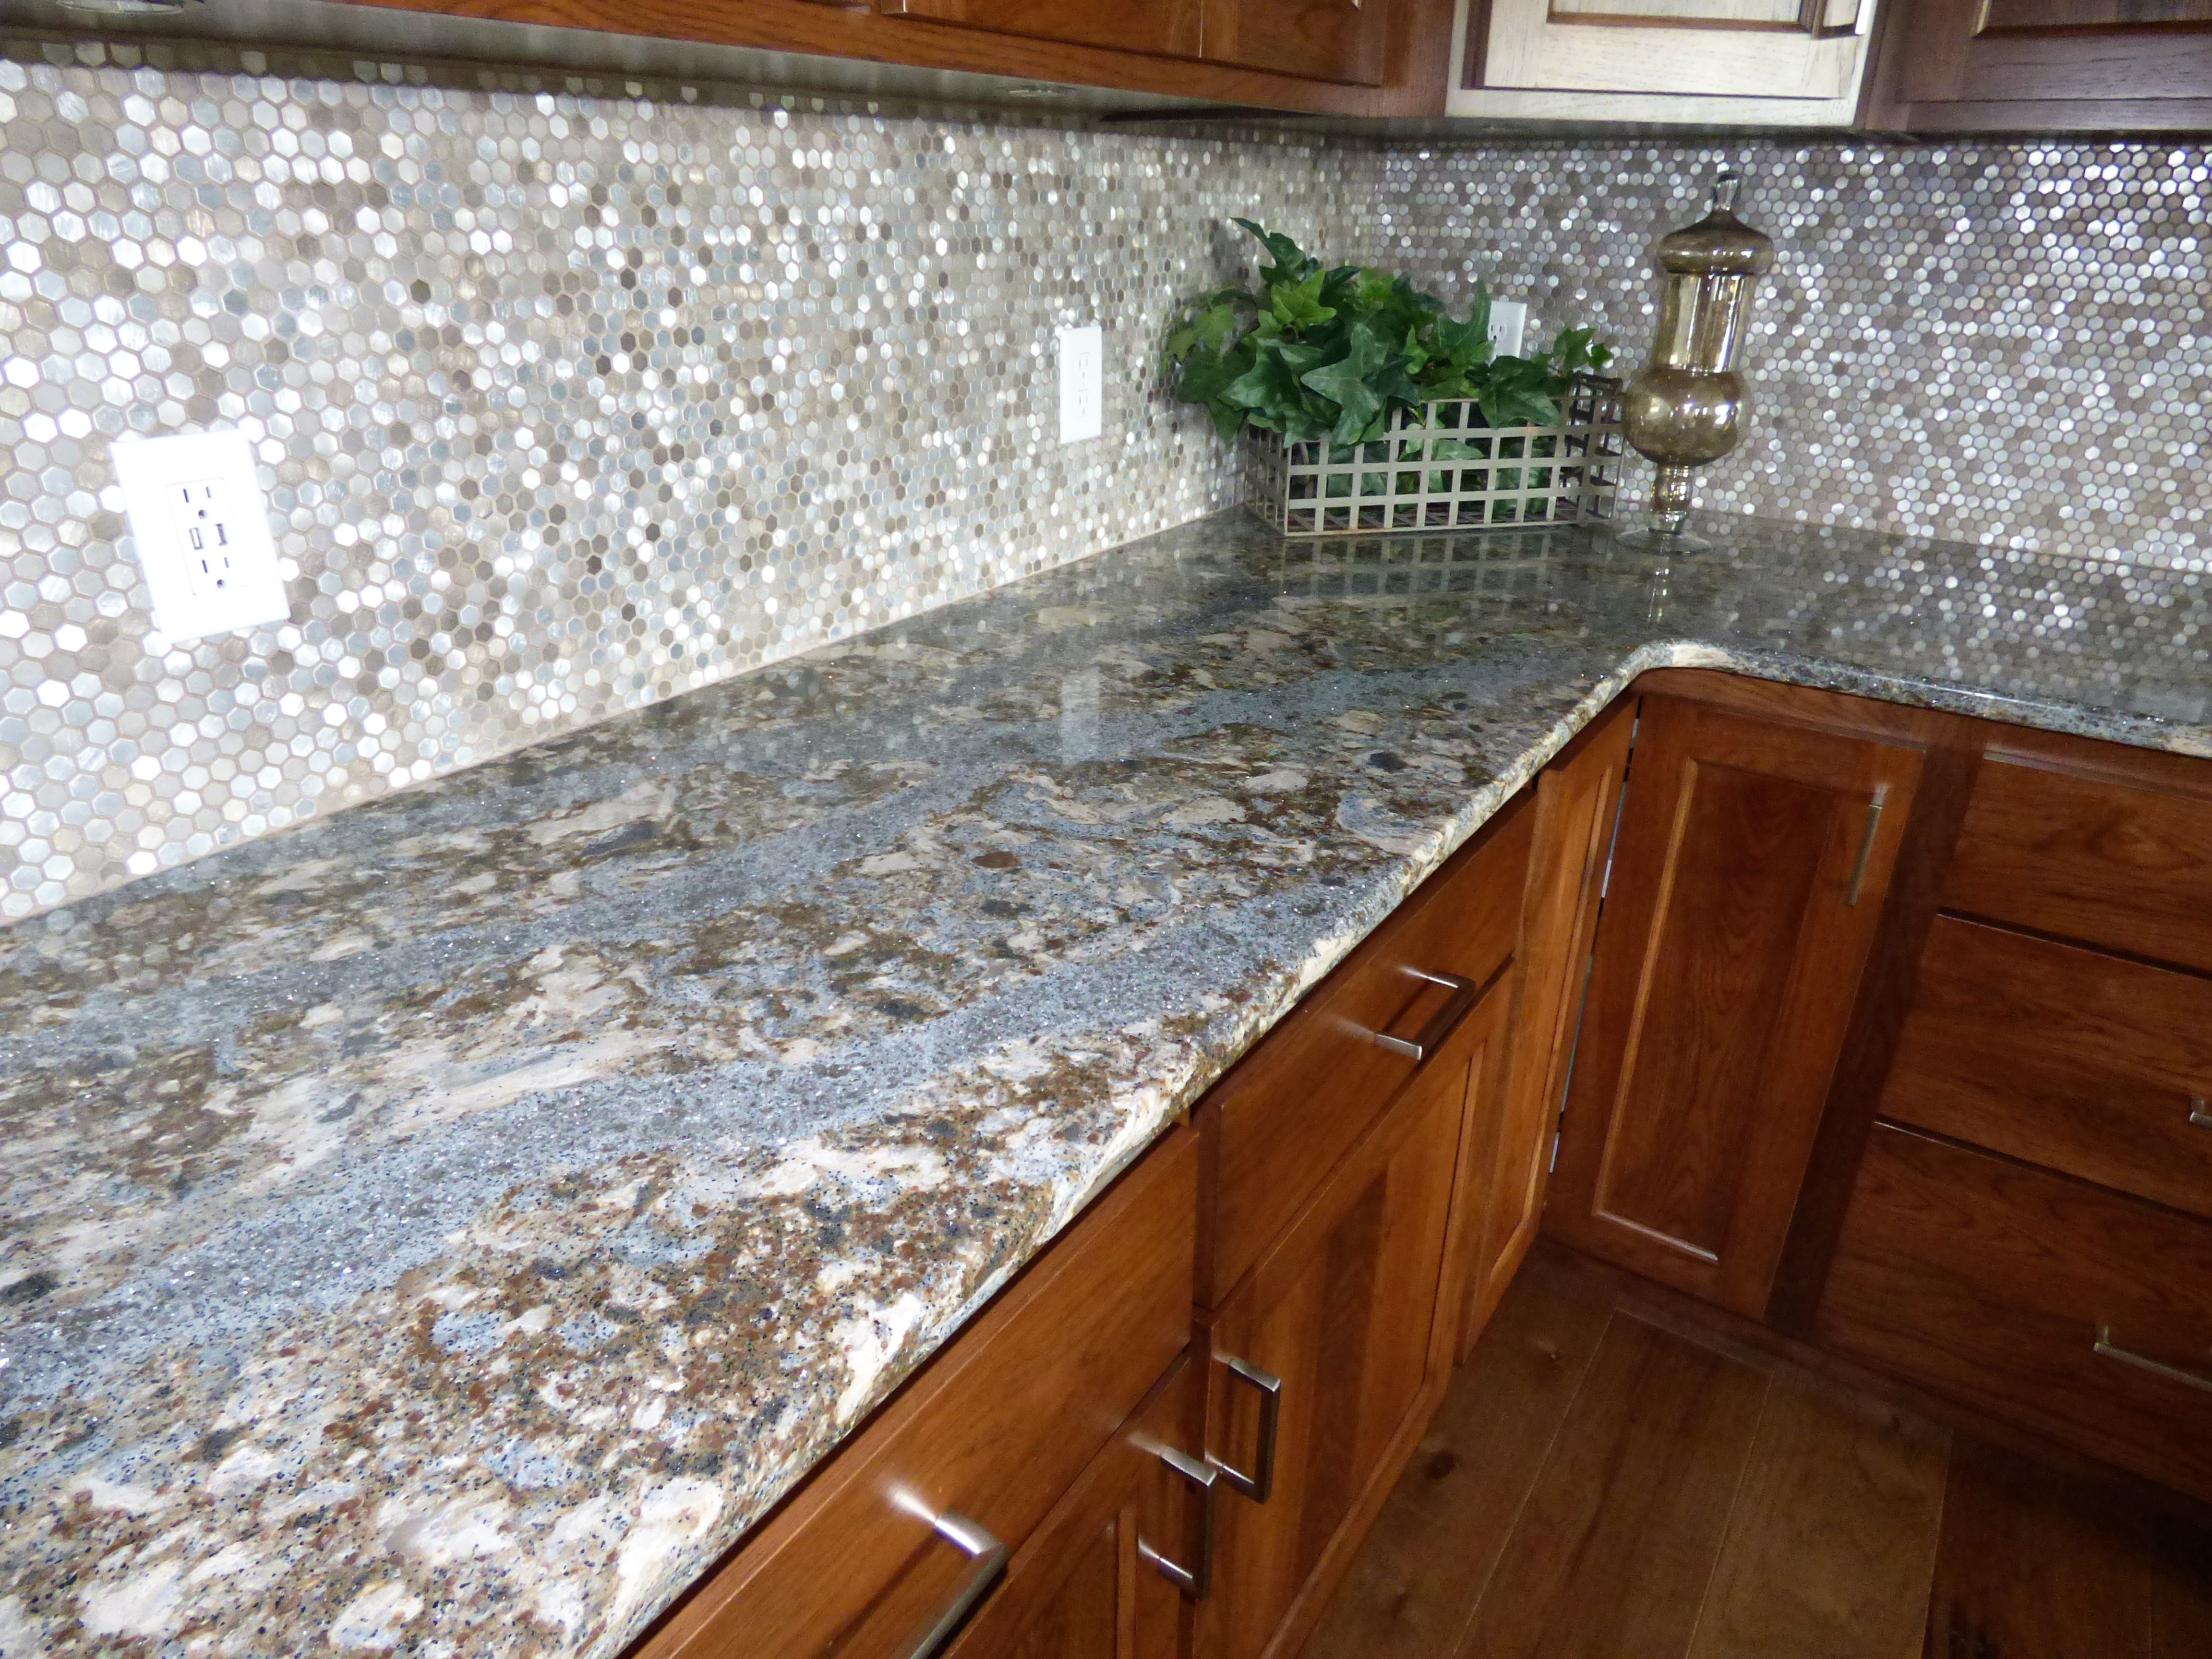 photos countertop sands and praa finished design reviews installed cambria quartz countertops products granix kitchen